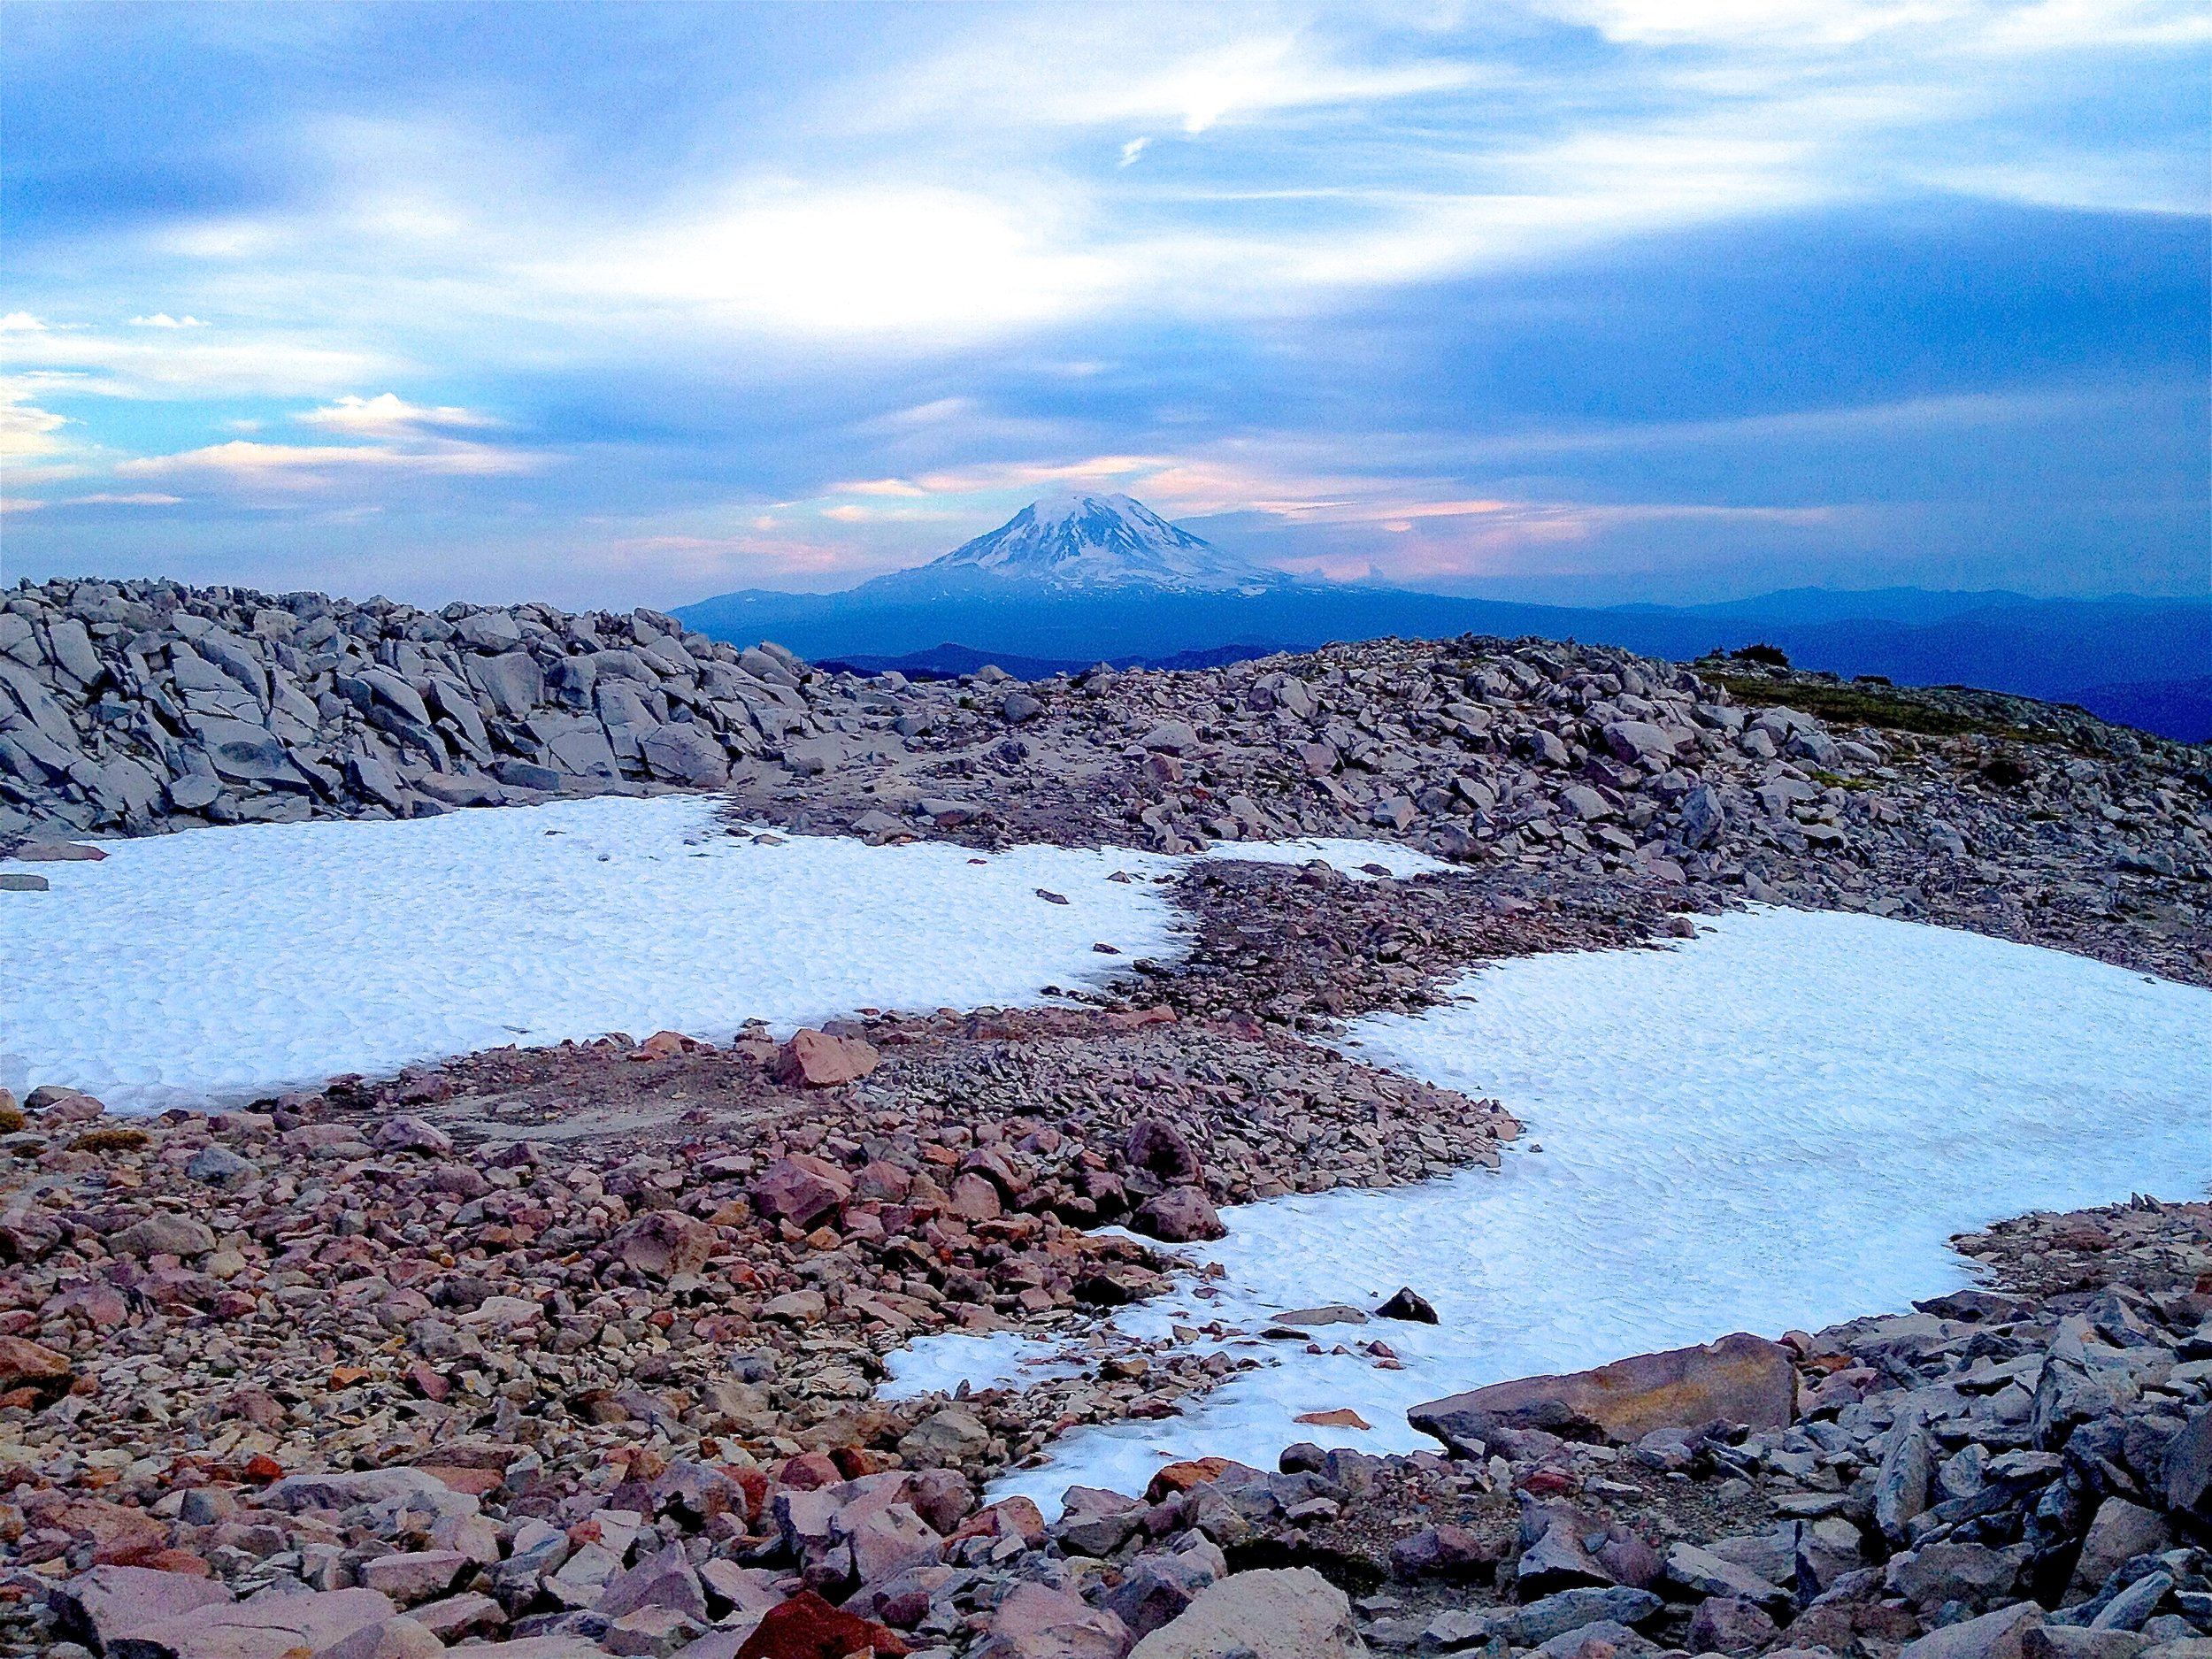 GOAT ROCKS WILDERNESS, (MT. ADAMS) , WASHINGTON